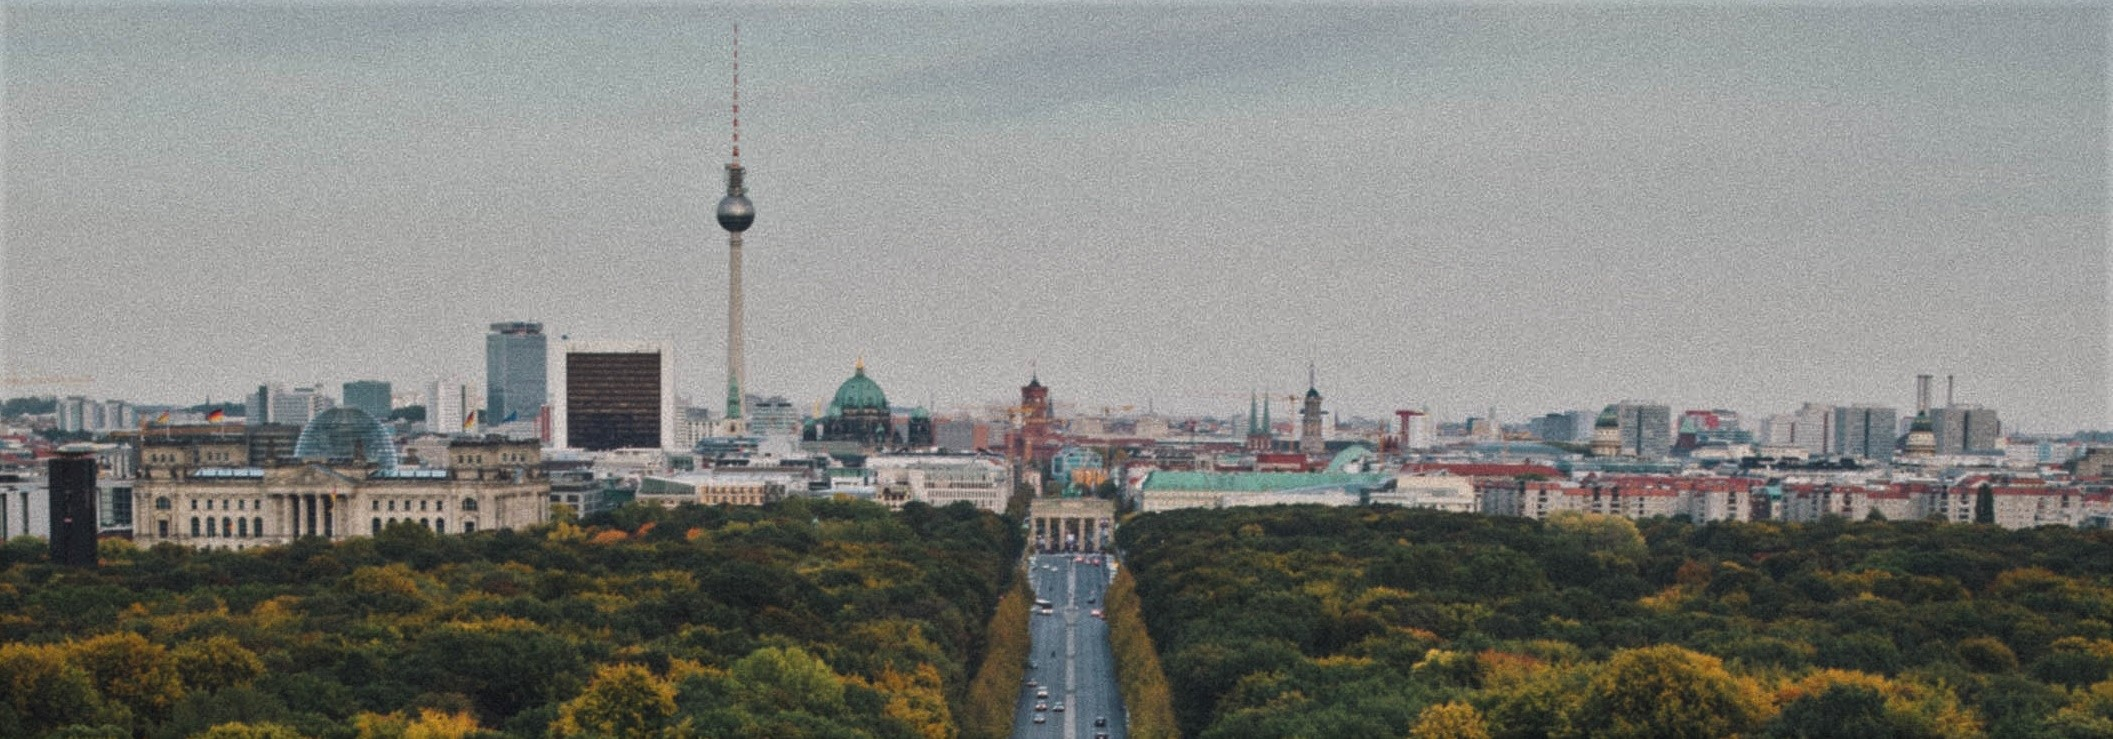 Meet me in Mitte- unique things to do in Berlin's city center